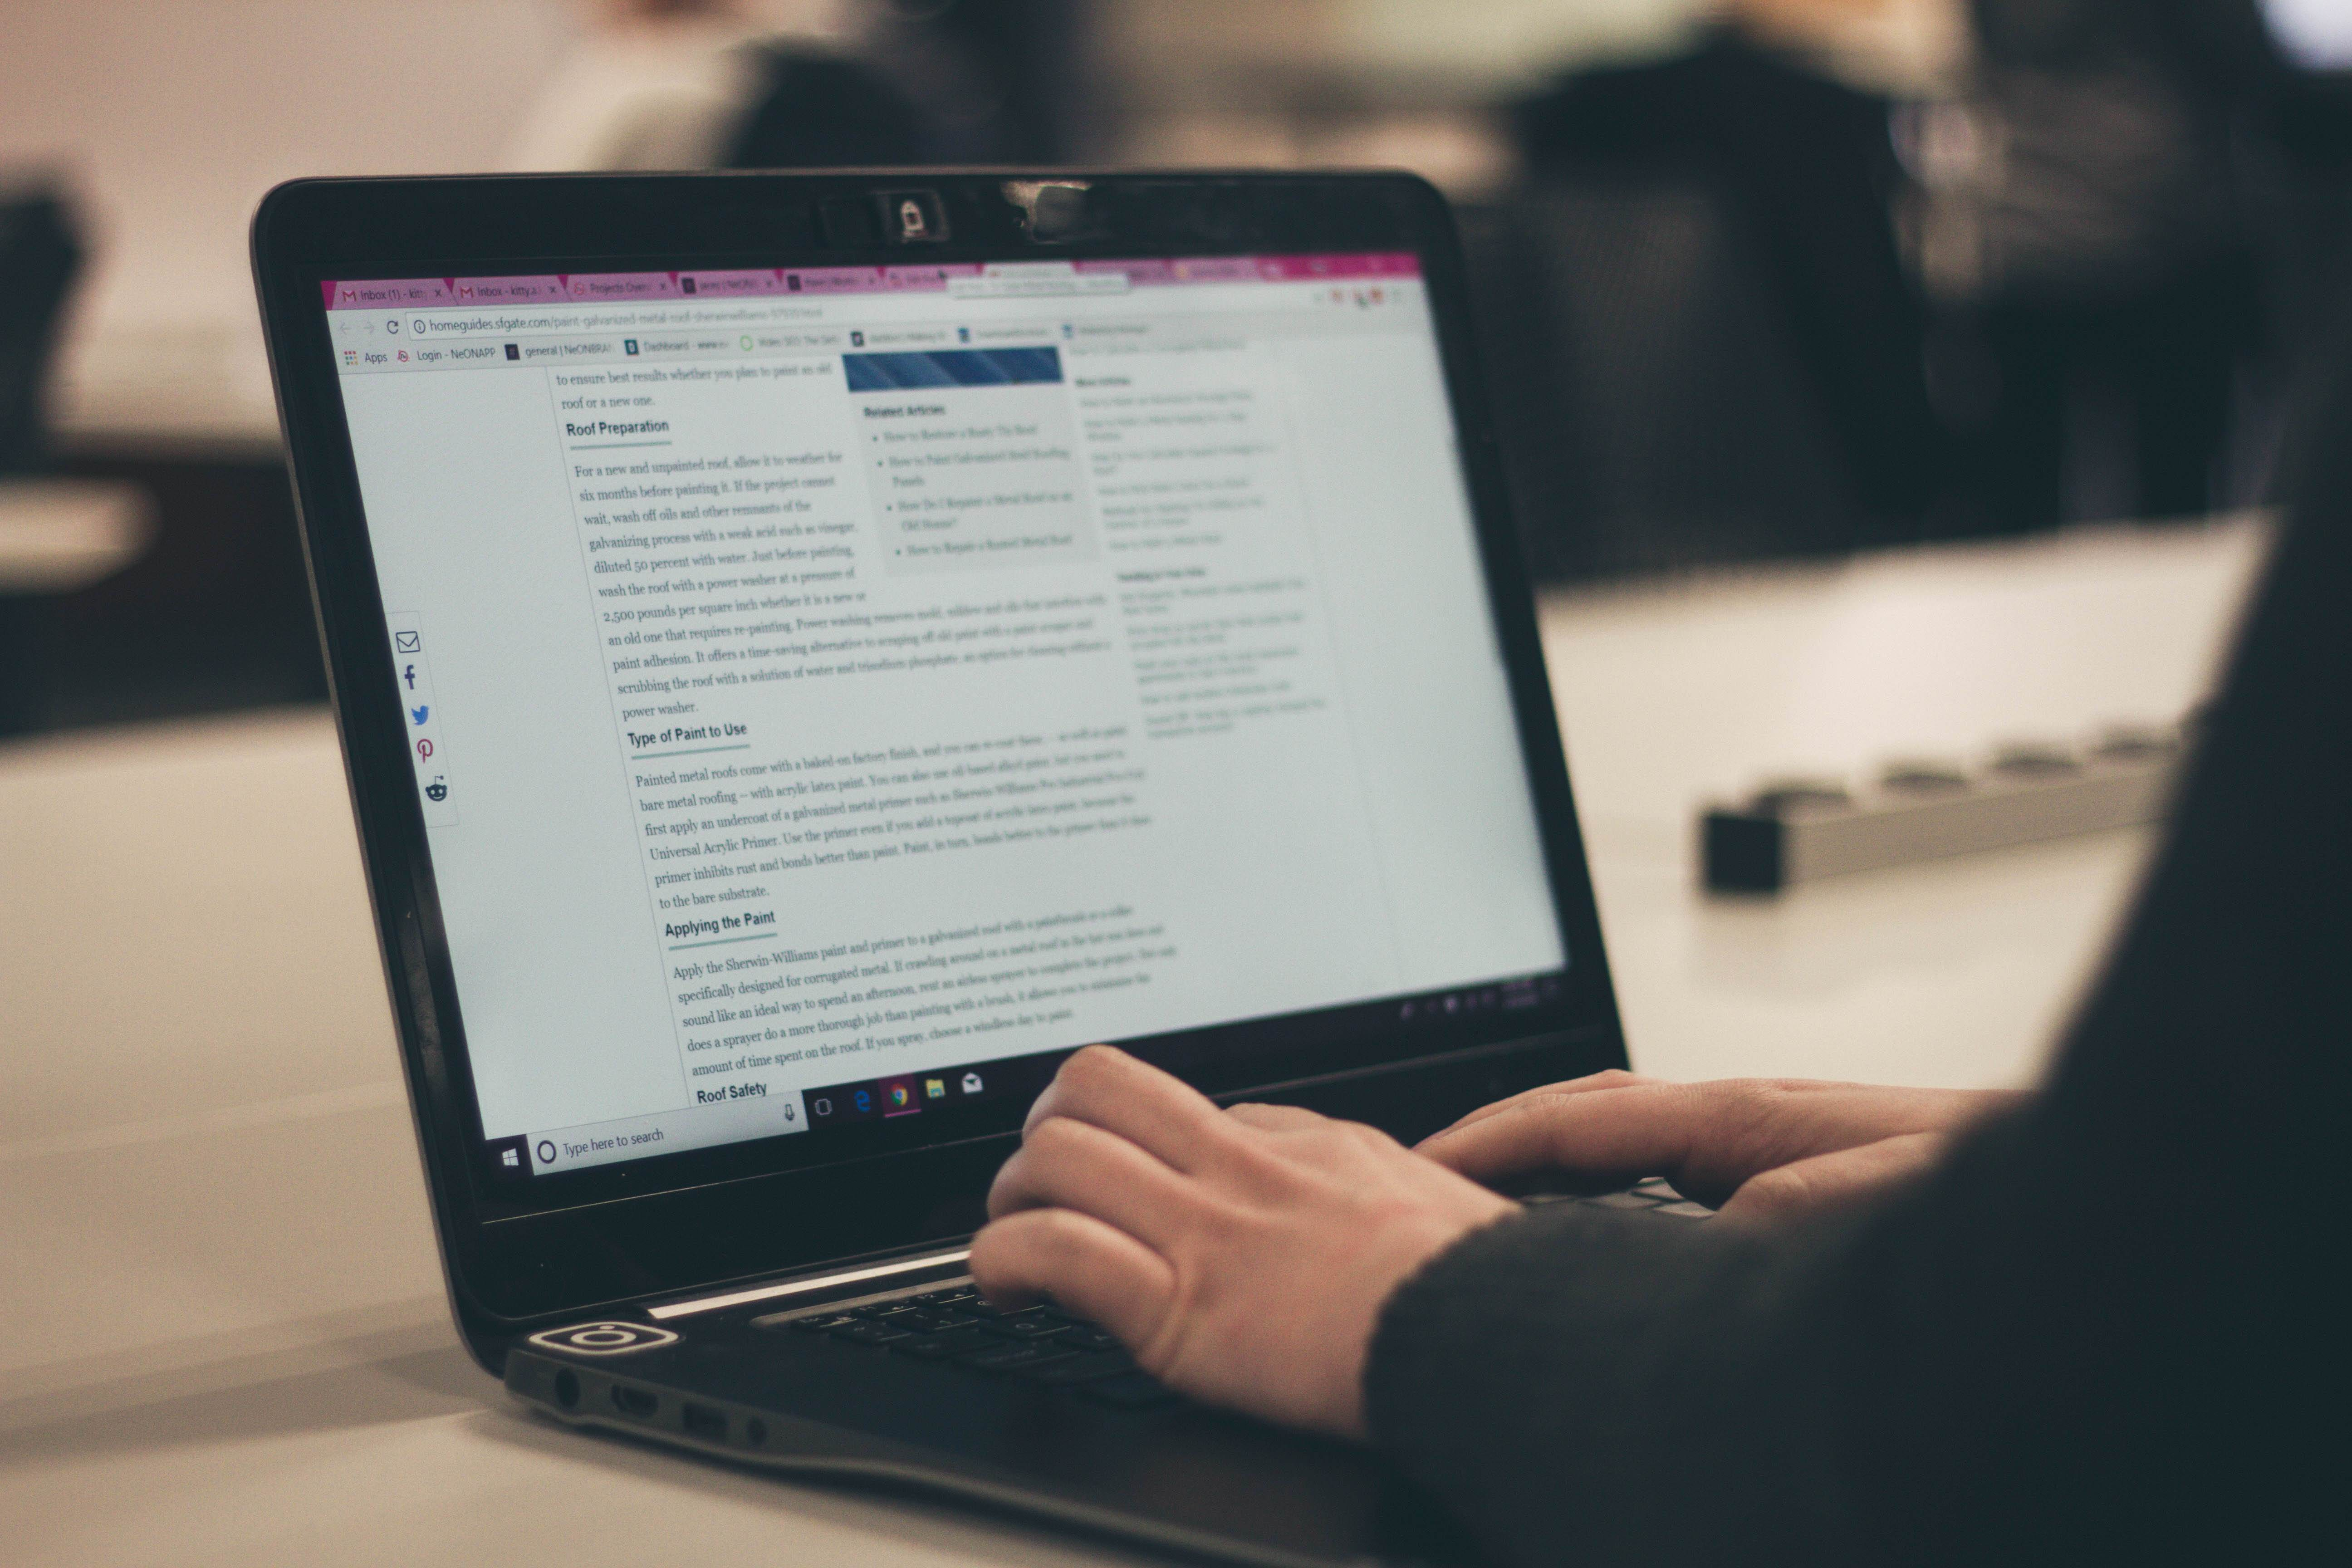 A person typing on a laptop with a blog post organized by different headings on the screen. Making your posts easier to read is another great way to improve your blogging.